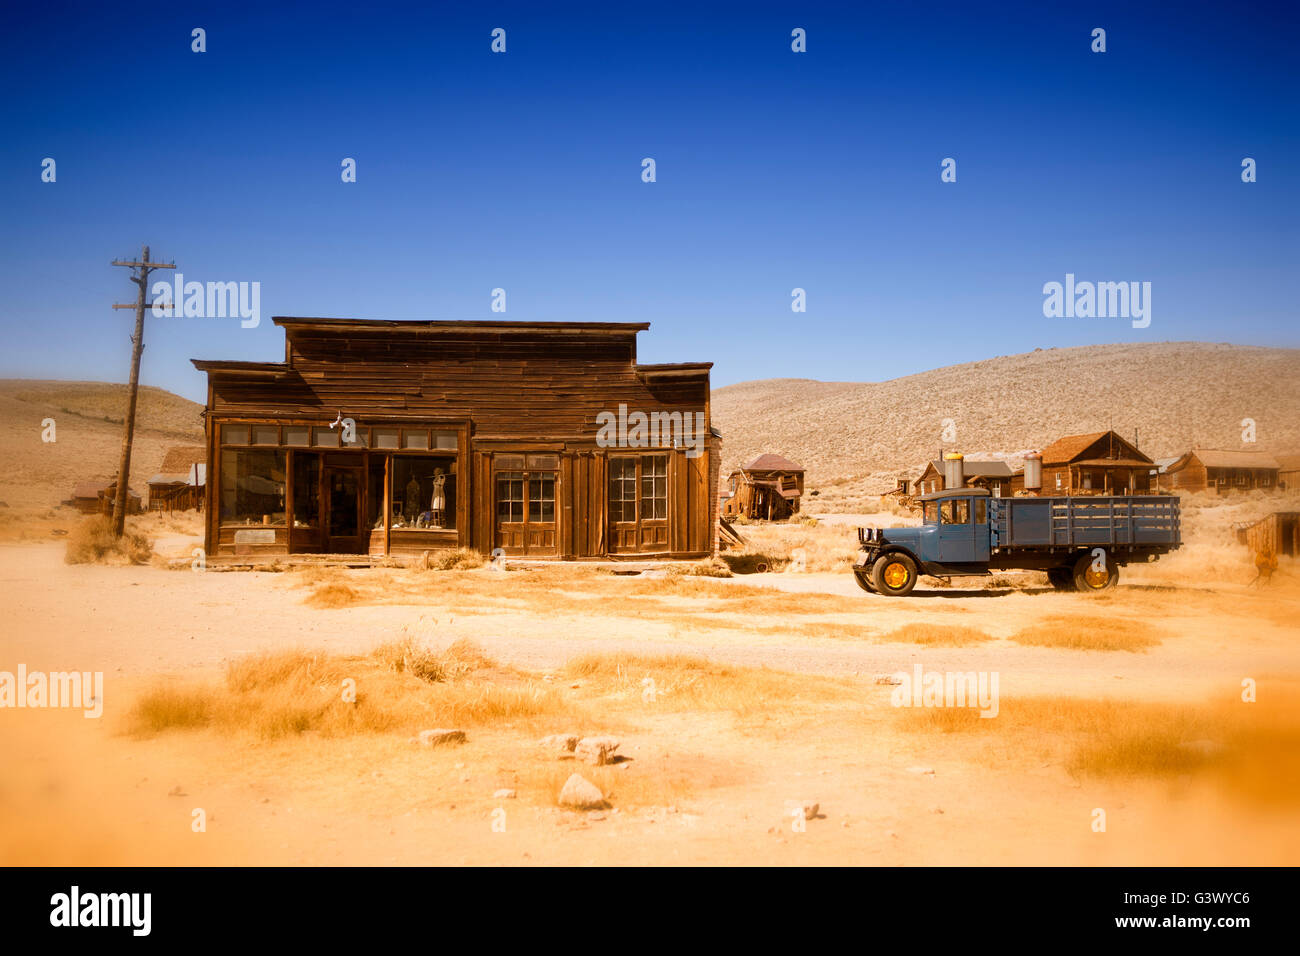 old wooden house and truck in Bodie, ghost town in California - Stock Image